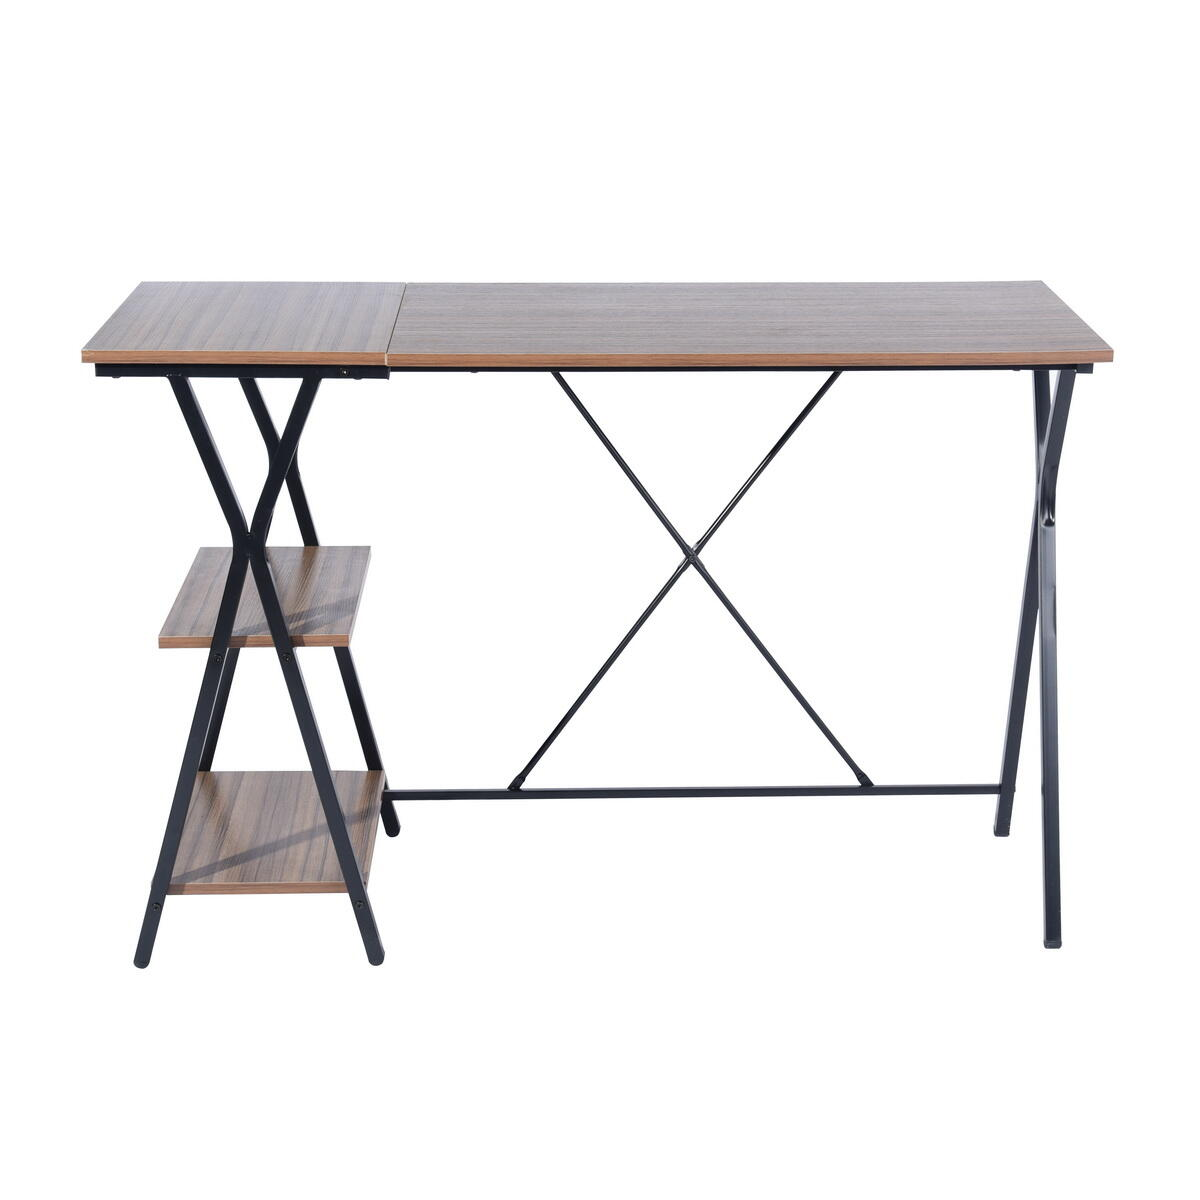 "FurnitureR Modern L-Shaped 47.2"" Long Desk Corner Computer Table"